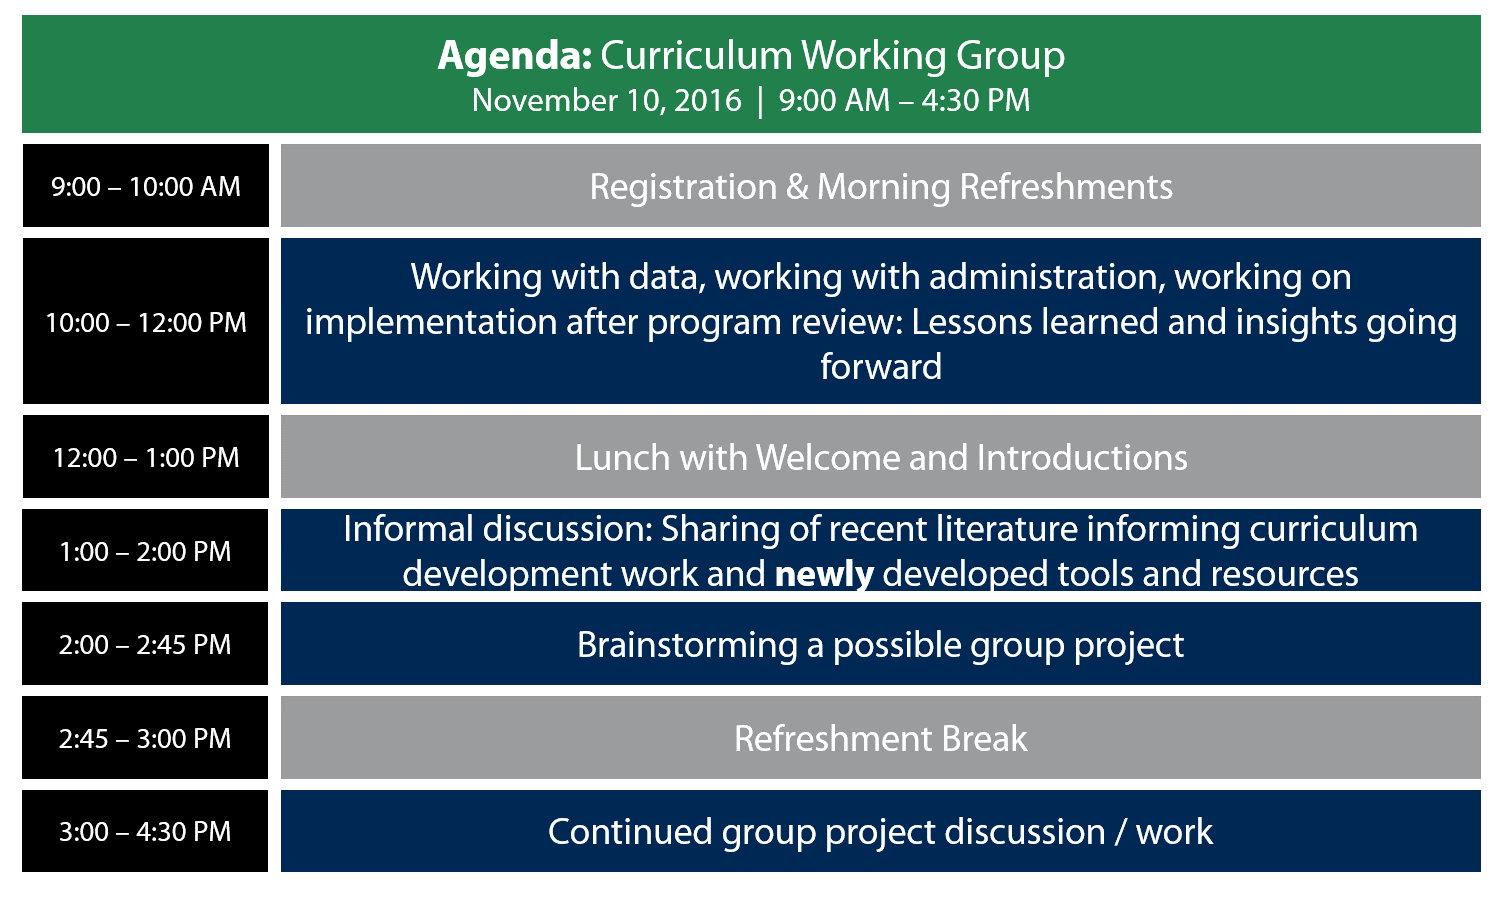 Curriculum Working Group Agenda